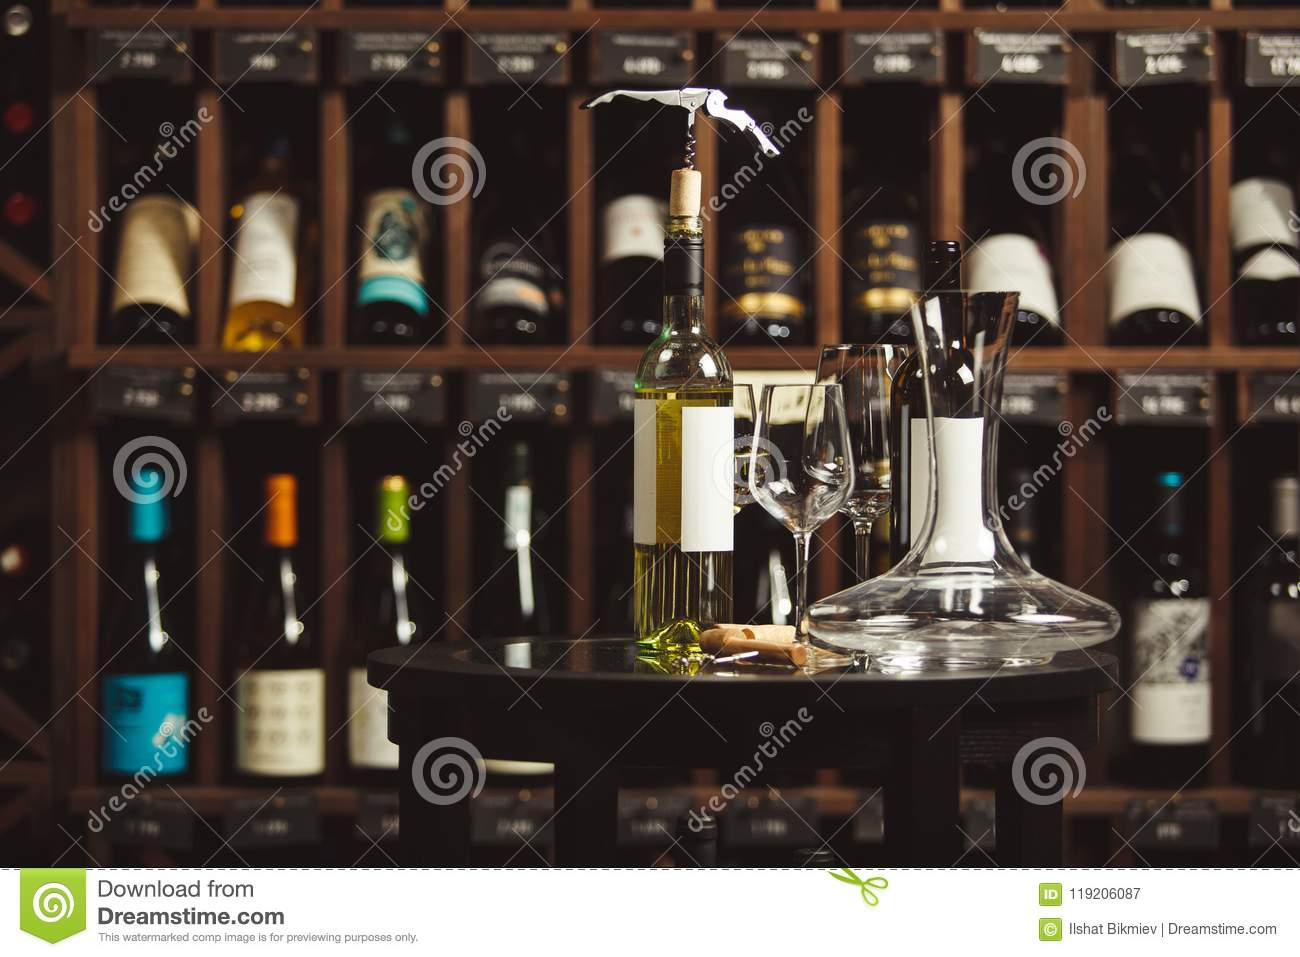 Bottle Of White Wine On The Table Next To Decanter And Glasses Over Shelf  Background.